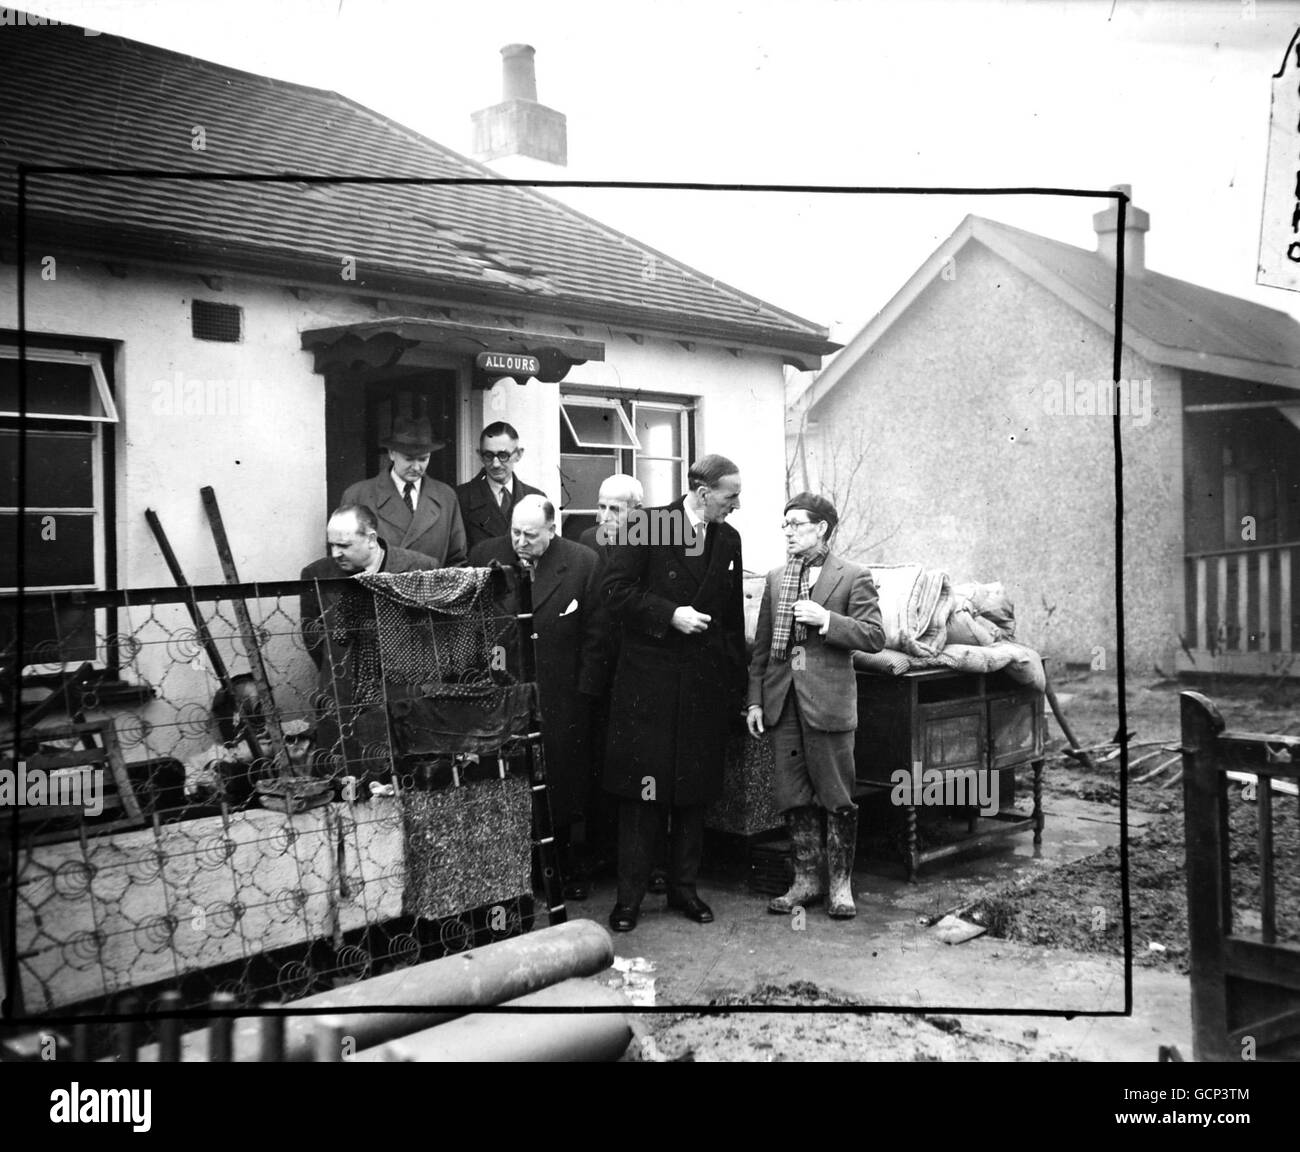 Disaster - The Lord Mayor of London, Sir Rupert De la Sere visited Canvey Island - Canvey Island - Stock Image